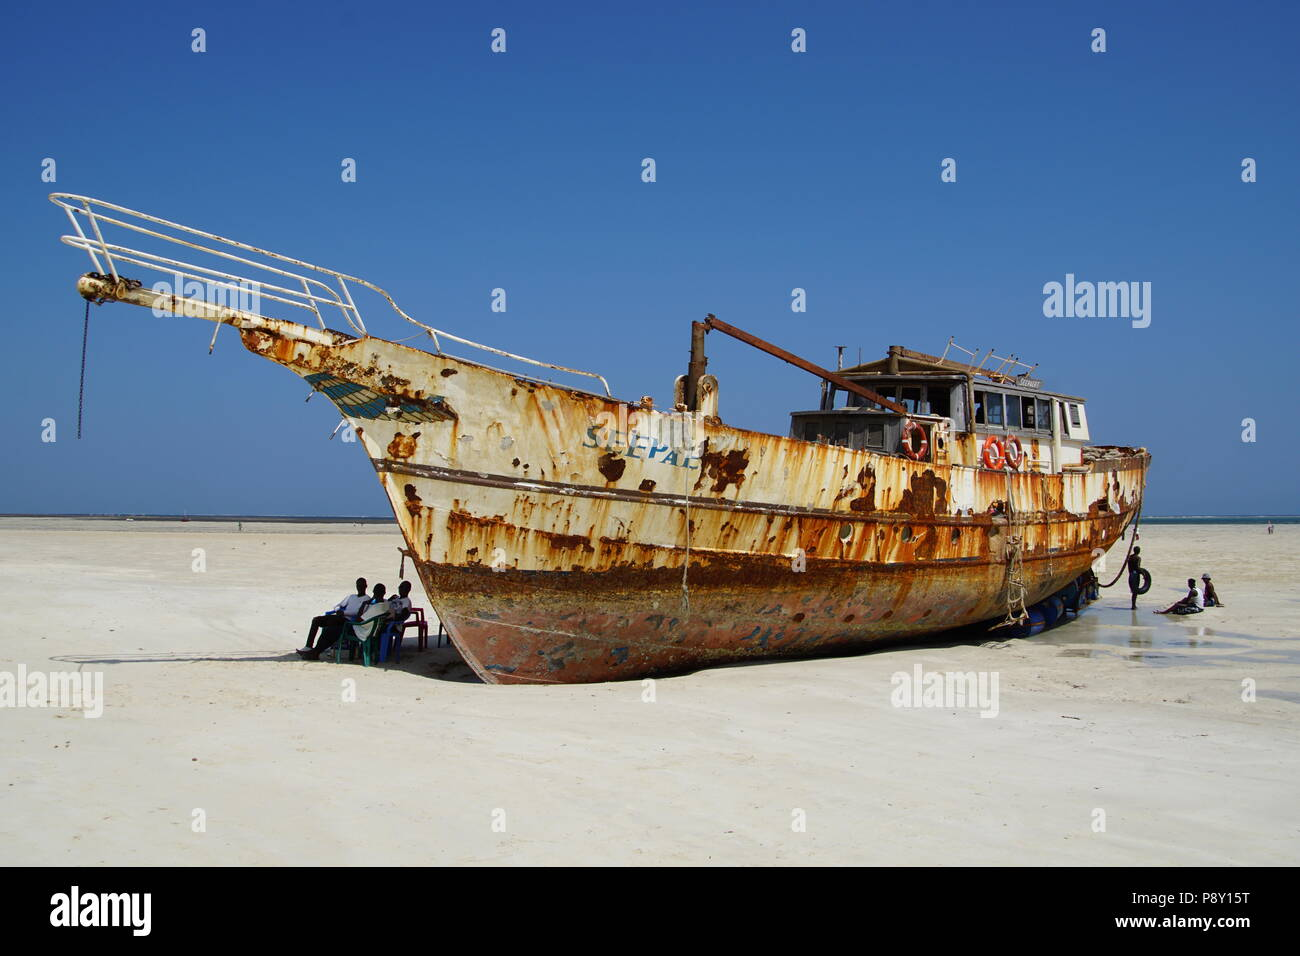 Mombasa Coast Stock Photos & Mombasa Coast Stock Images - Alamy